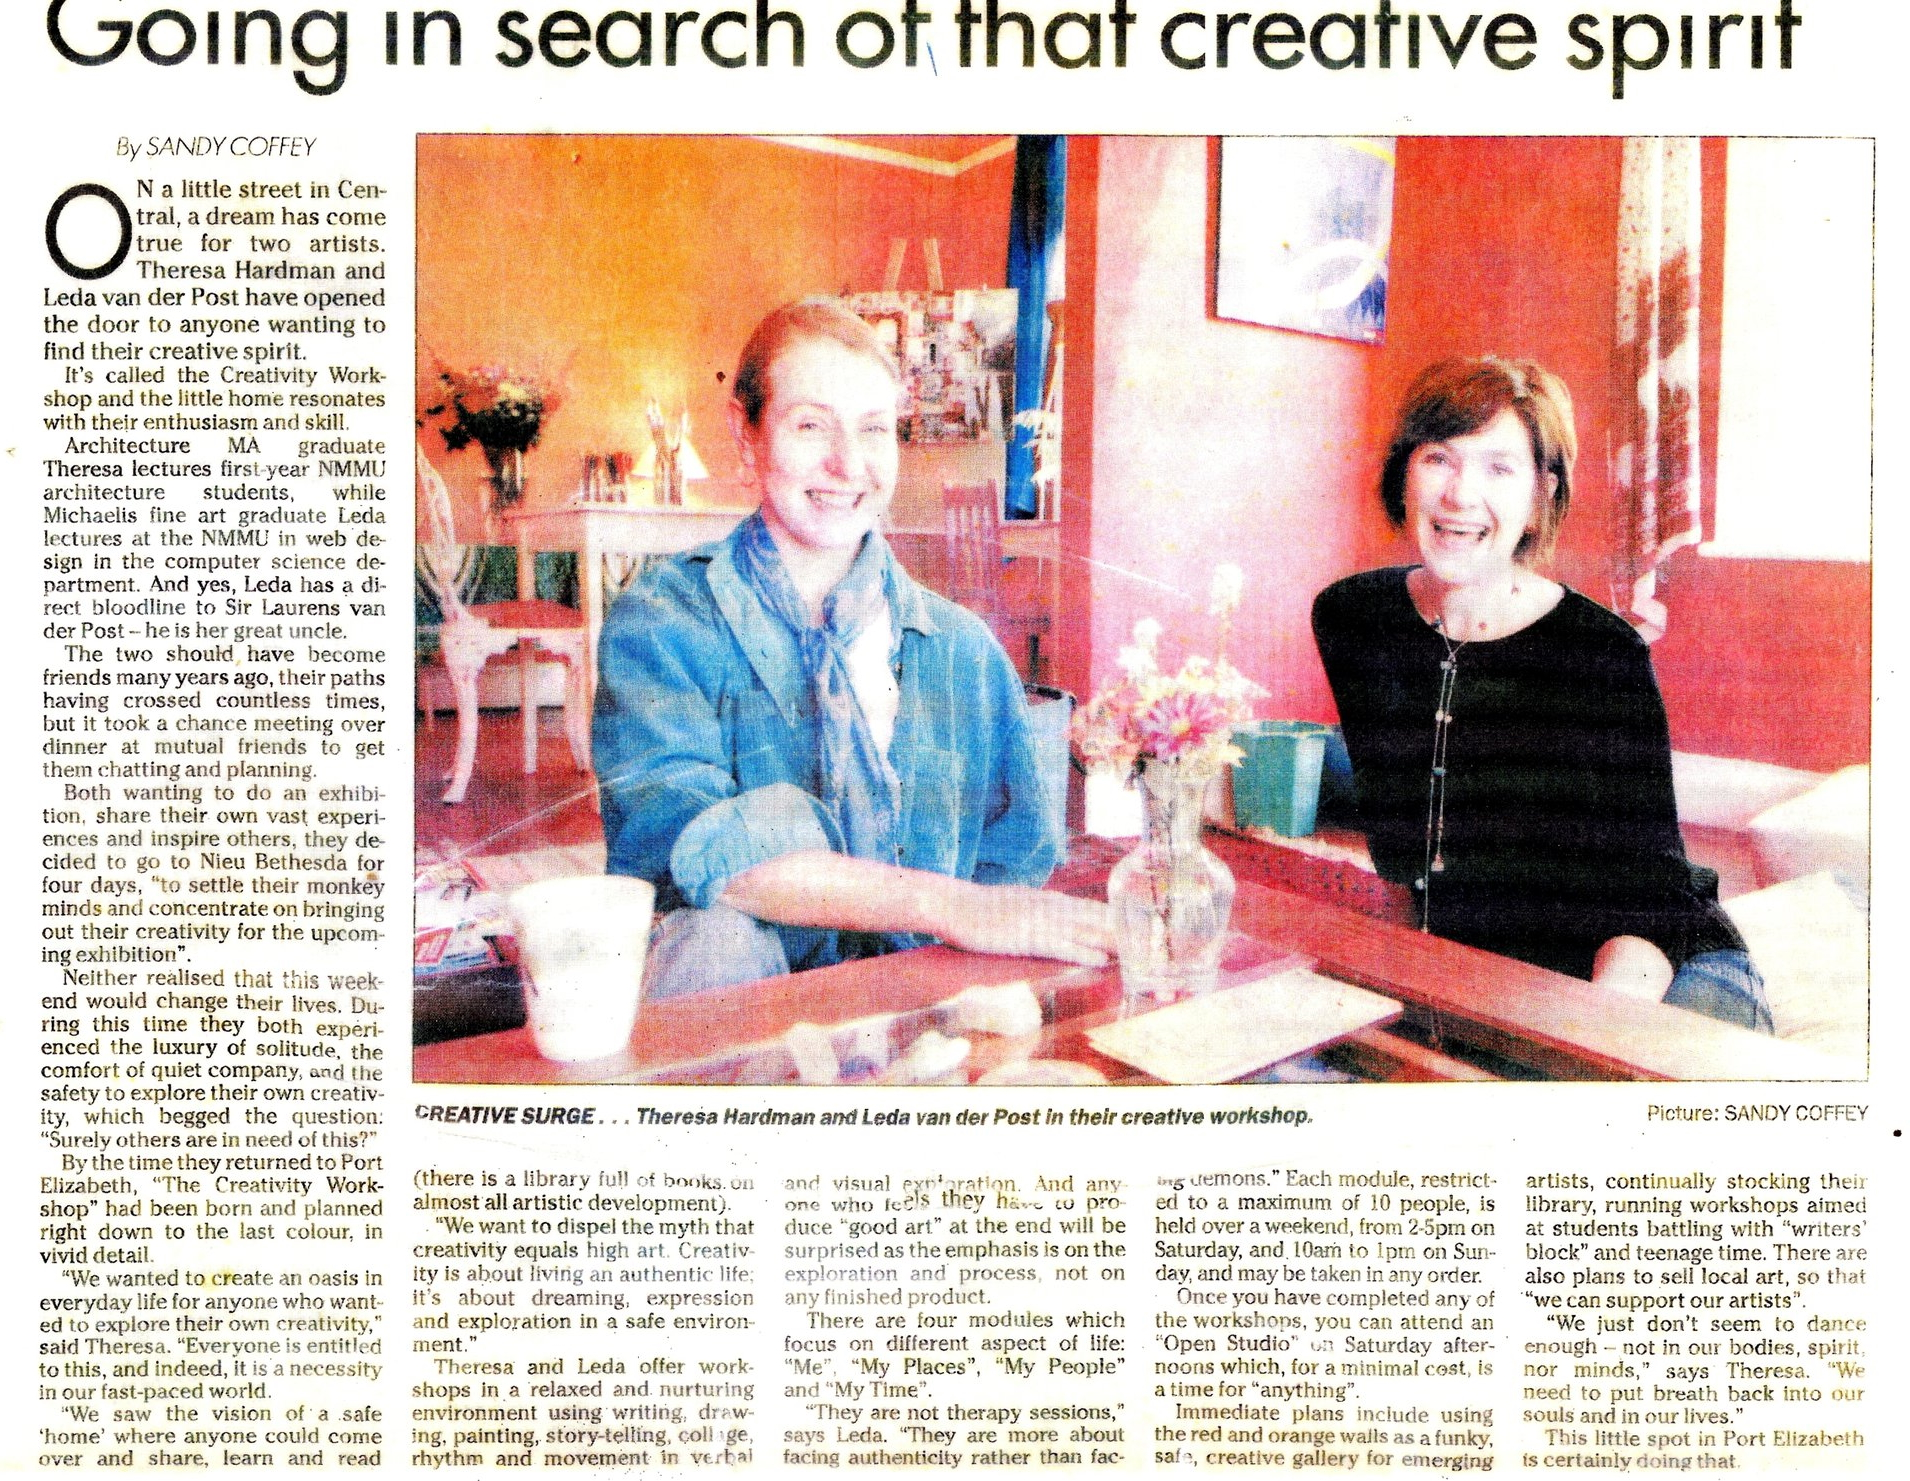 Going in search of that creative spirit - article by Sandy Coffey